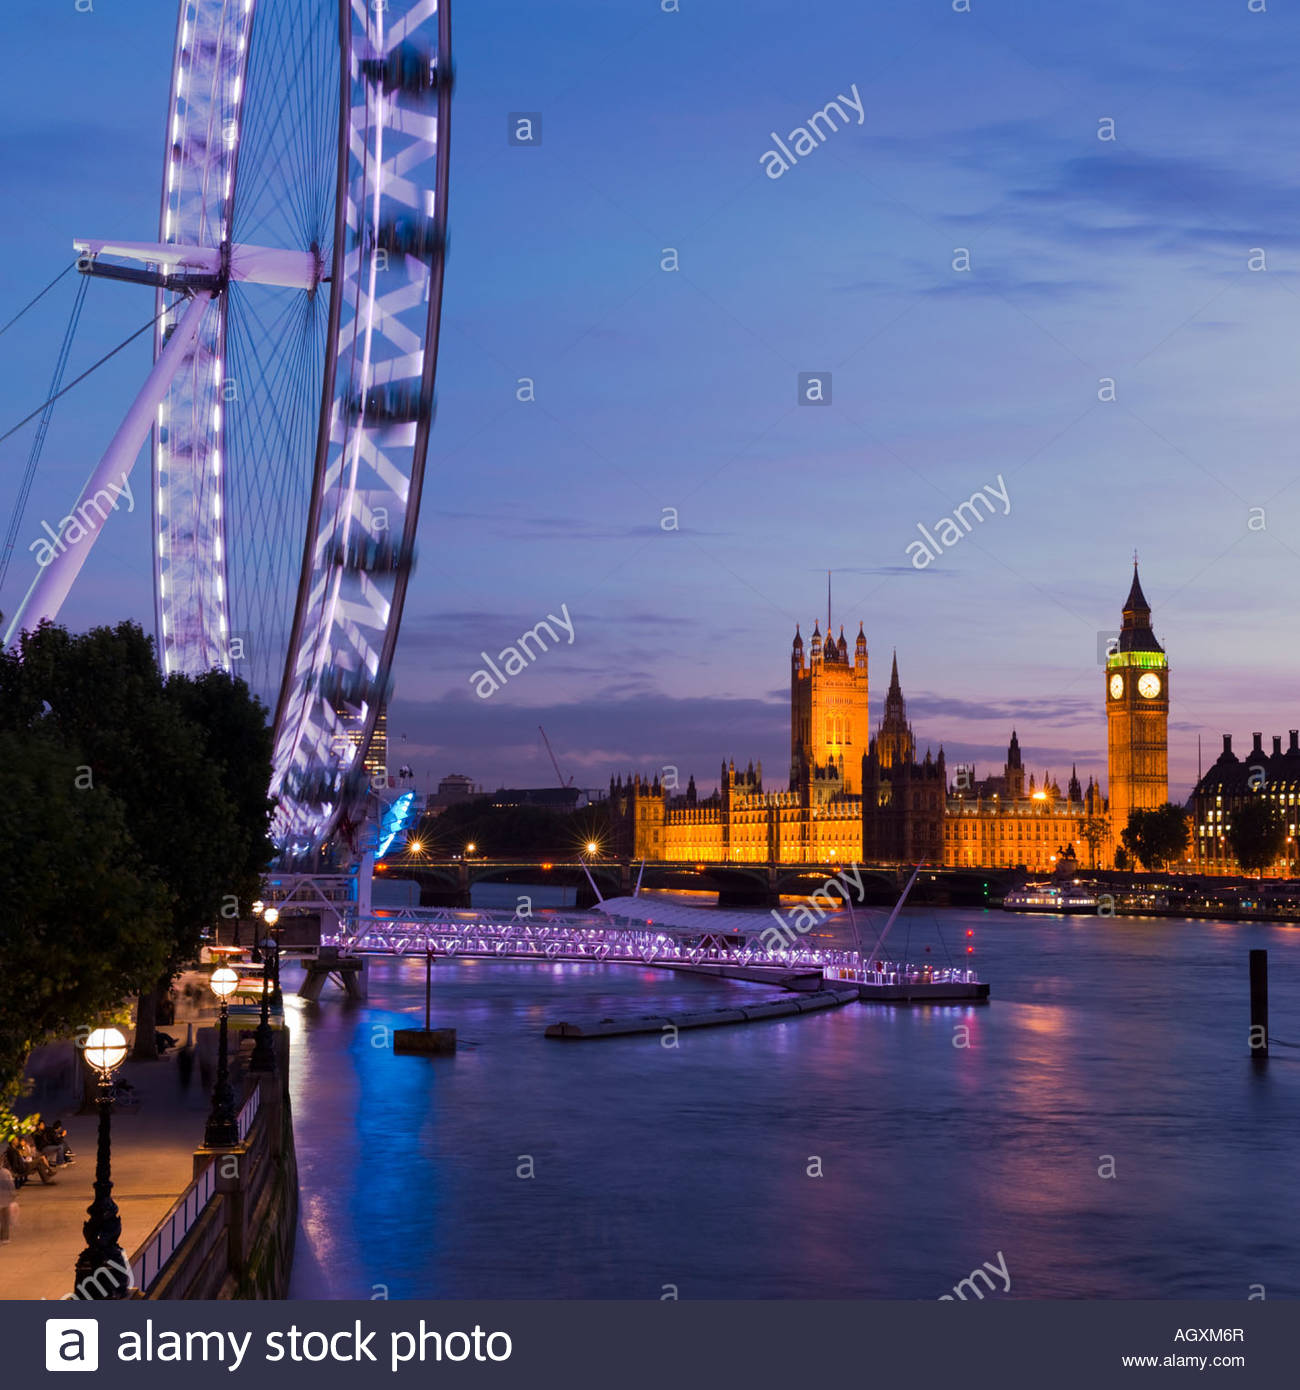 The London Eye and the Houses of Parliament at night, London, England. Stock Photo